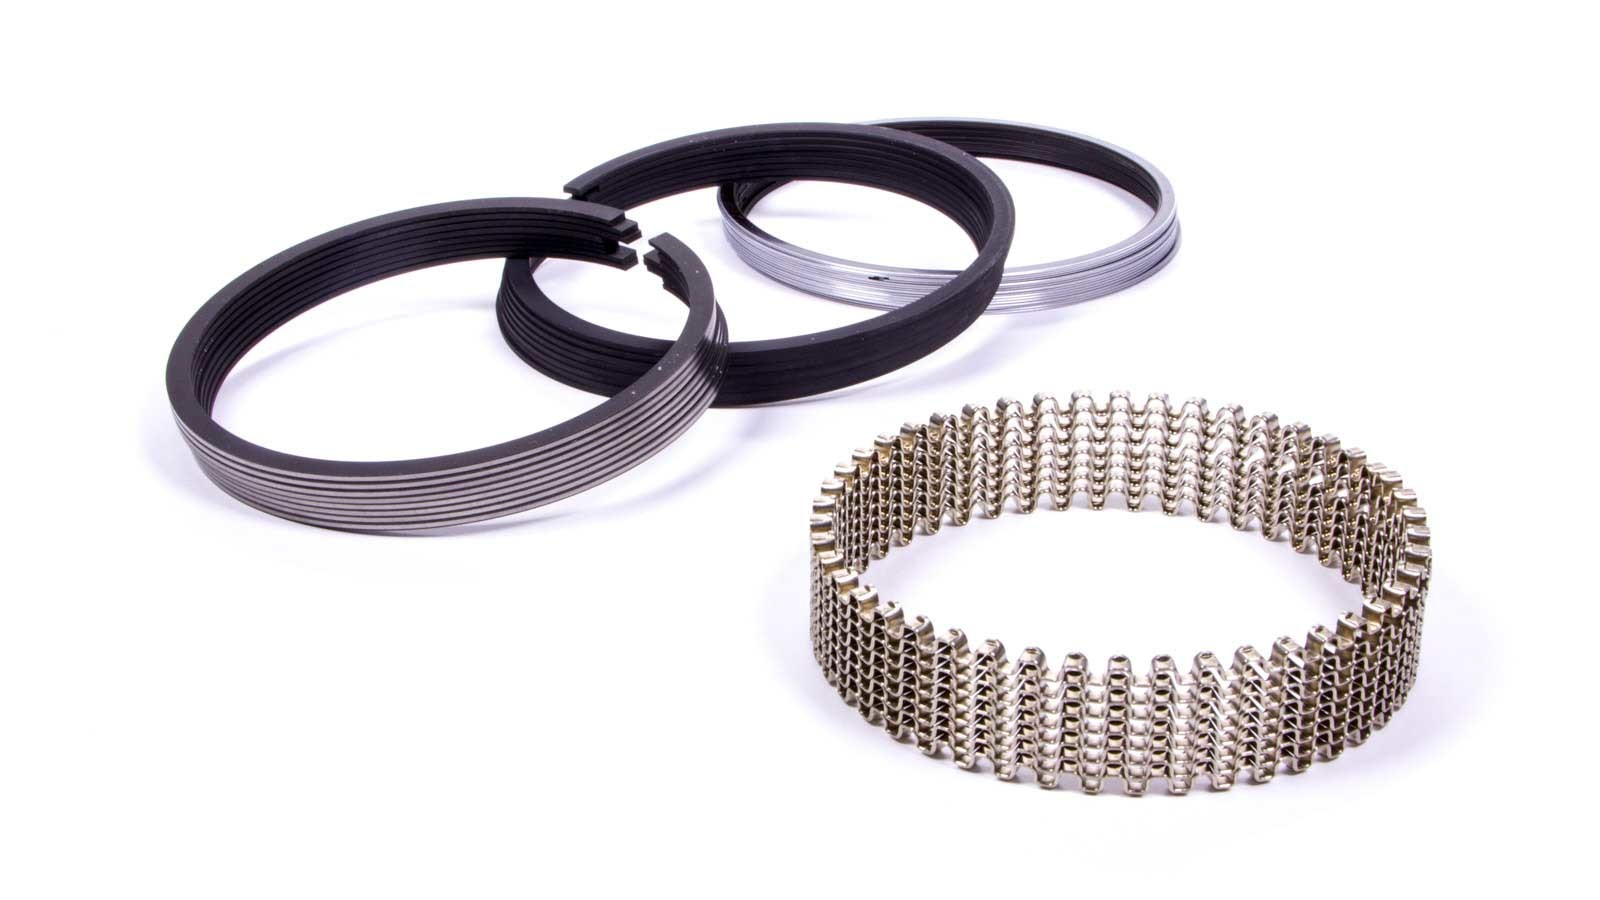 JE Pistons S100S8-4310-5 Piston Rings, Sportsman Series, 4.310 in Bore, File Fit, 1/16 x 1/16 x 3/16 in Thick, Standard Tension, Plasma Moly, 8 Cylinder, Kit